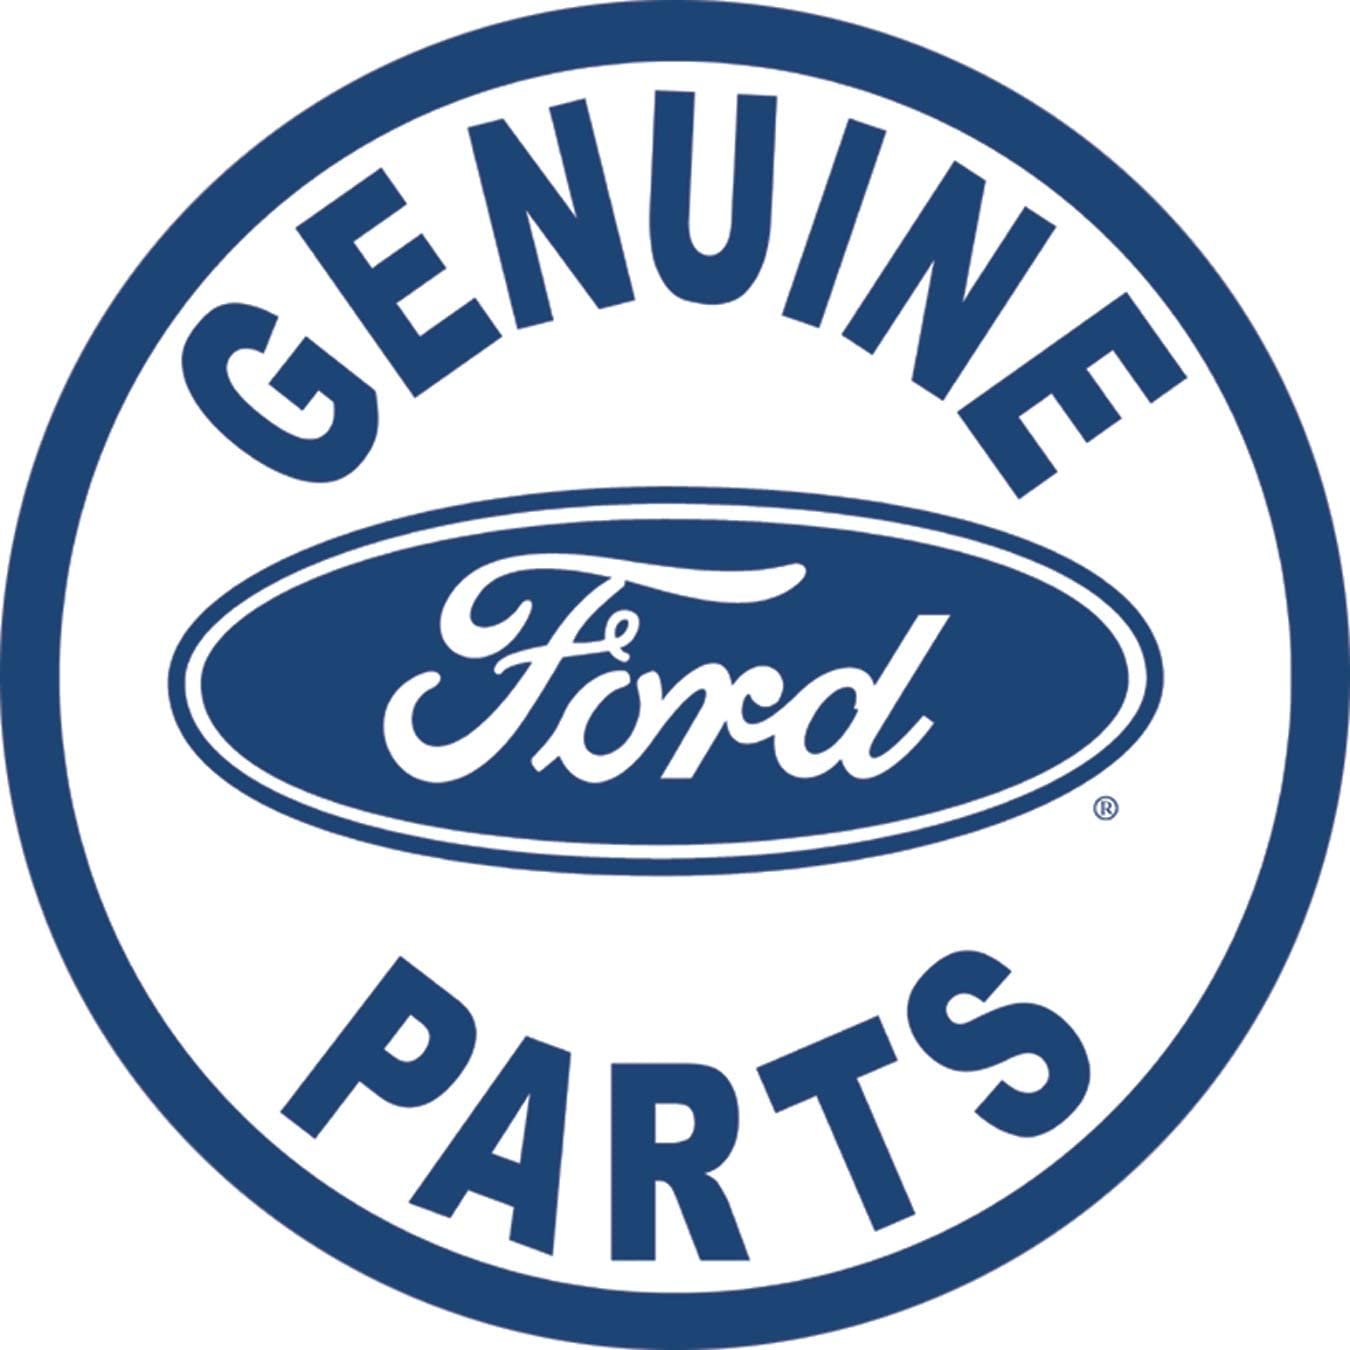 Genuine Ford Parts Old Sign Muscle Shirt Licensed Ford Truck